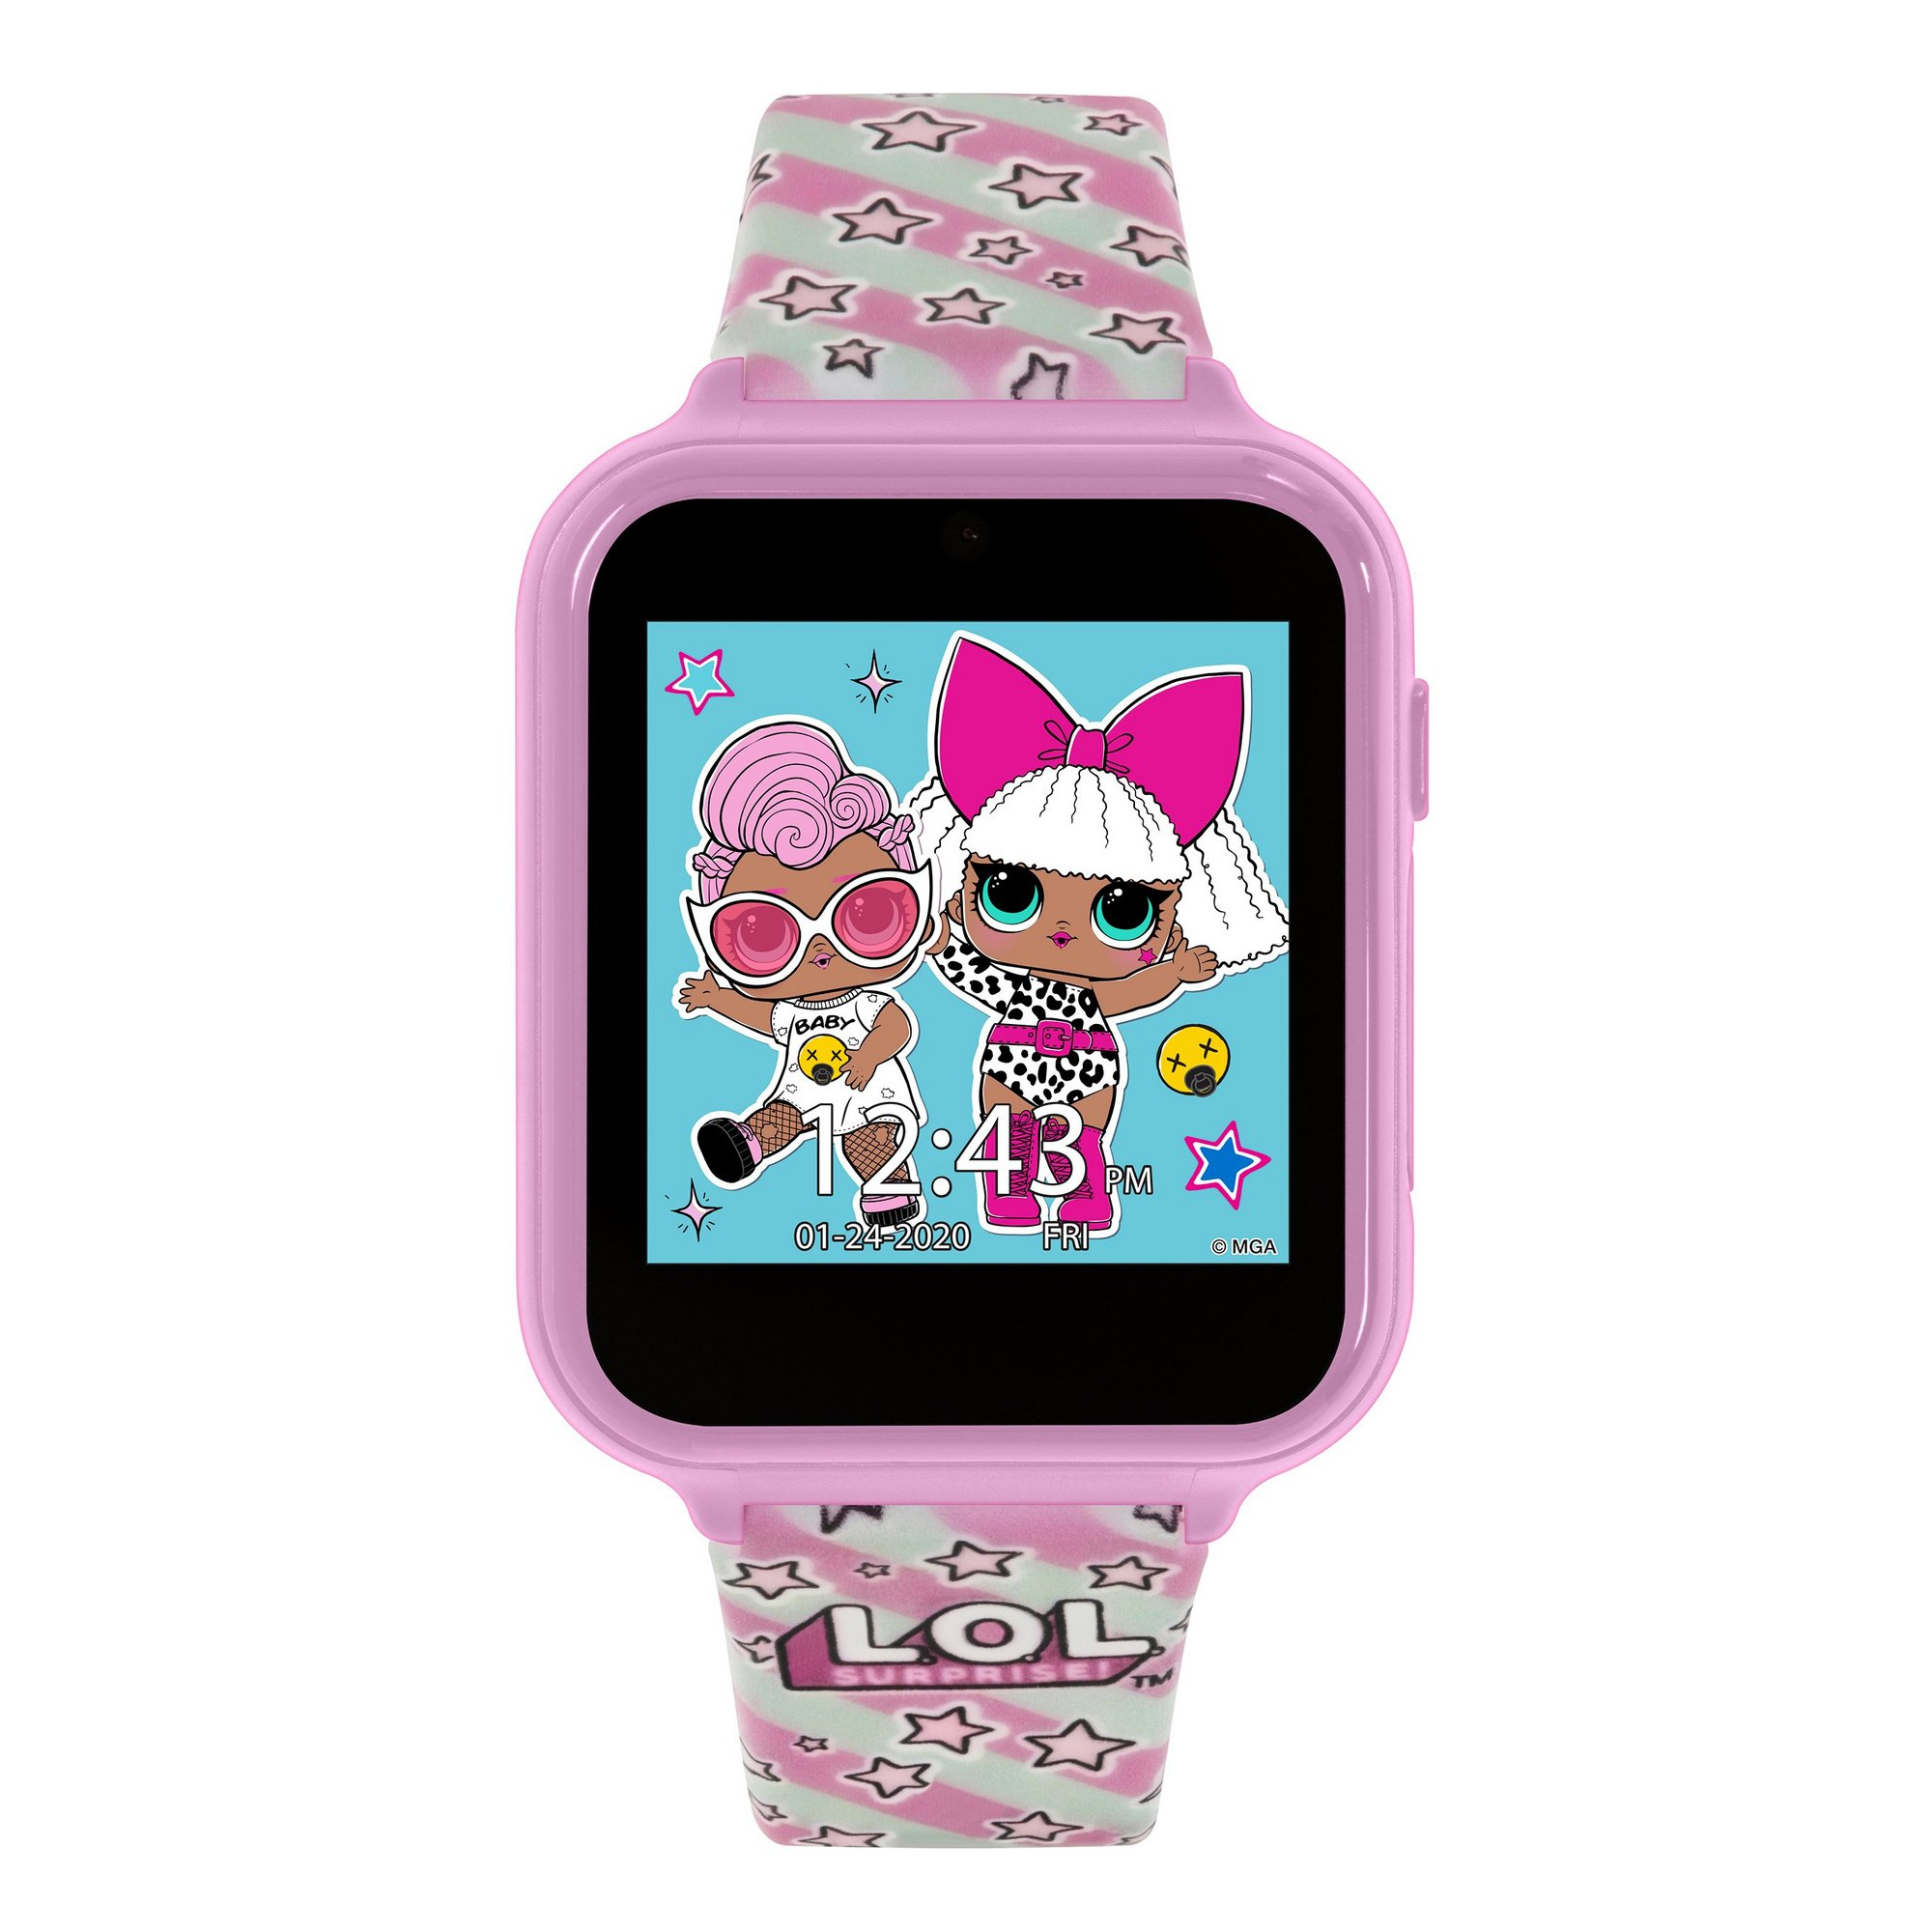 Image of L.O.L Surprise! Kids Interactive Watch